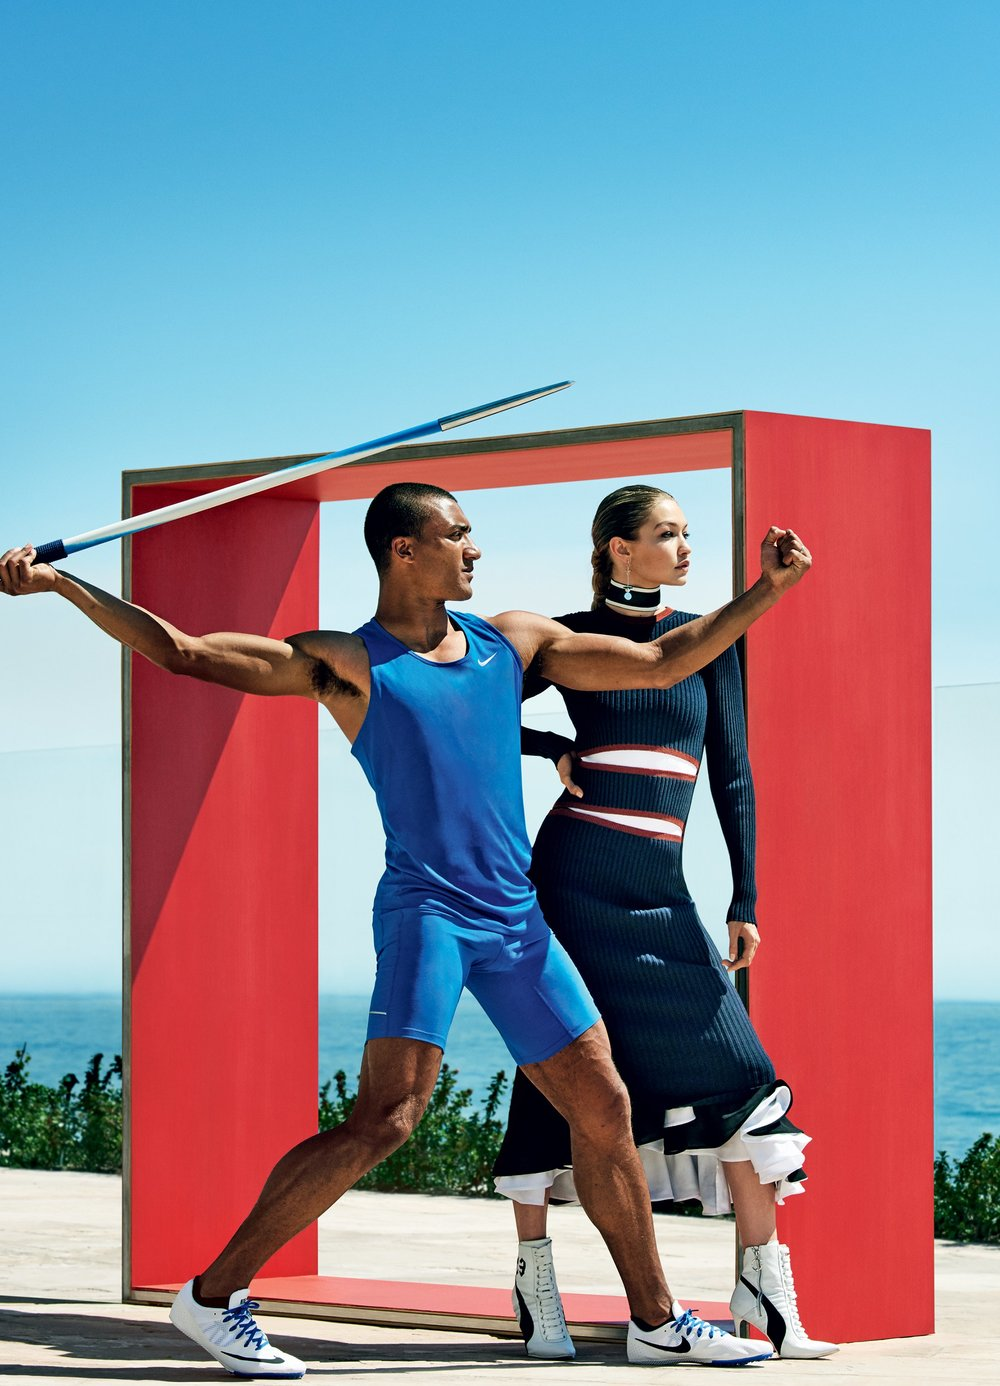 gigi-hadid-ashton-eaton-august-2016-vogue-cover-04.jpg